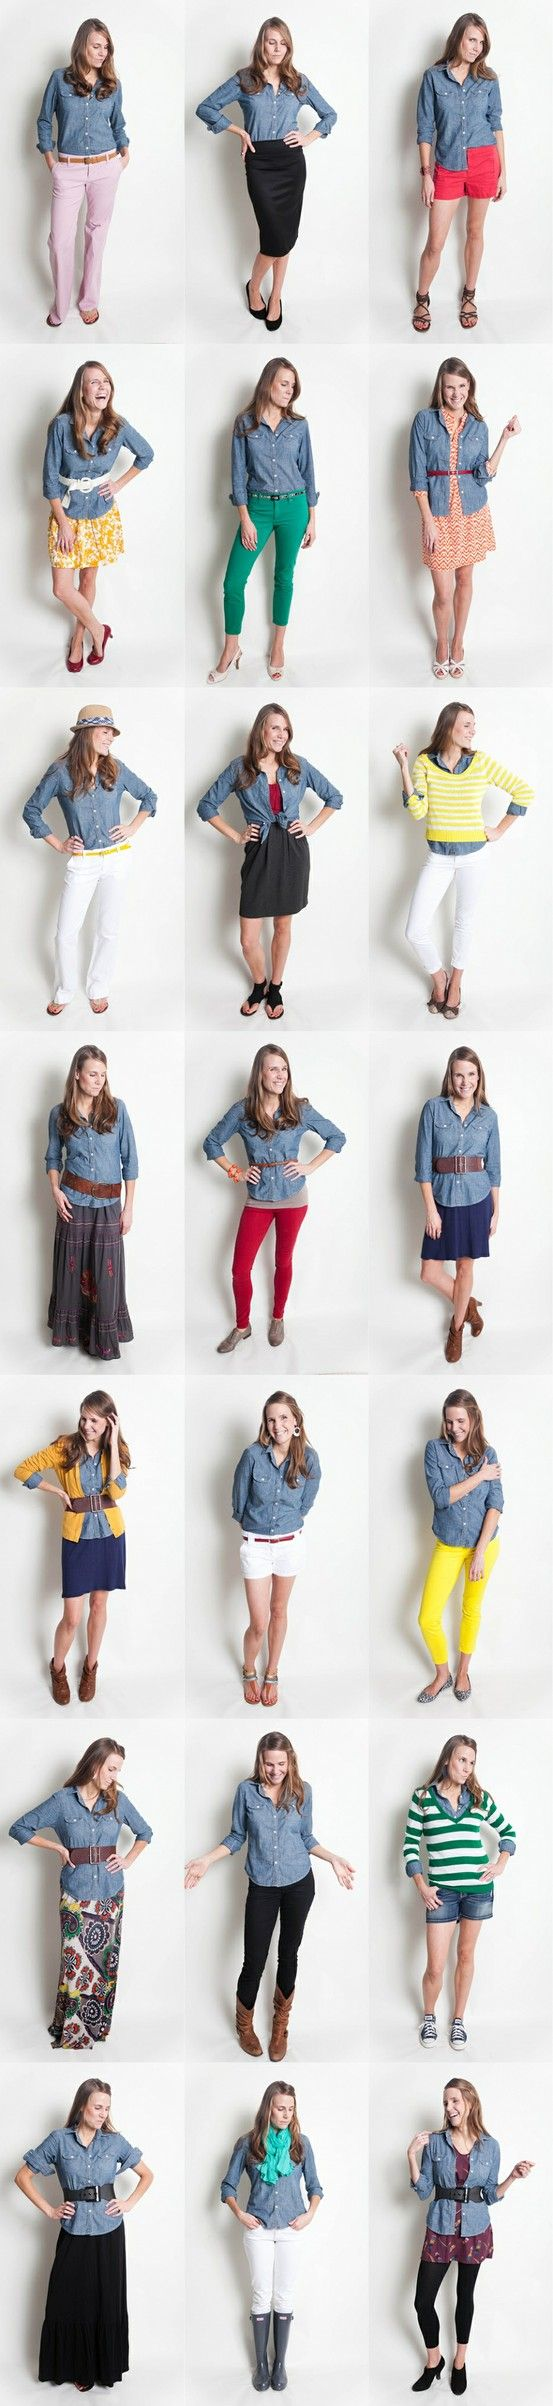 21 ways to wear your denim/jean/chambray shirt:) this comes in handy, because I have to wear a shirt like this to work, so now I have plenty of ideas if how to wear it outside of work too:)